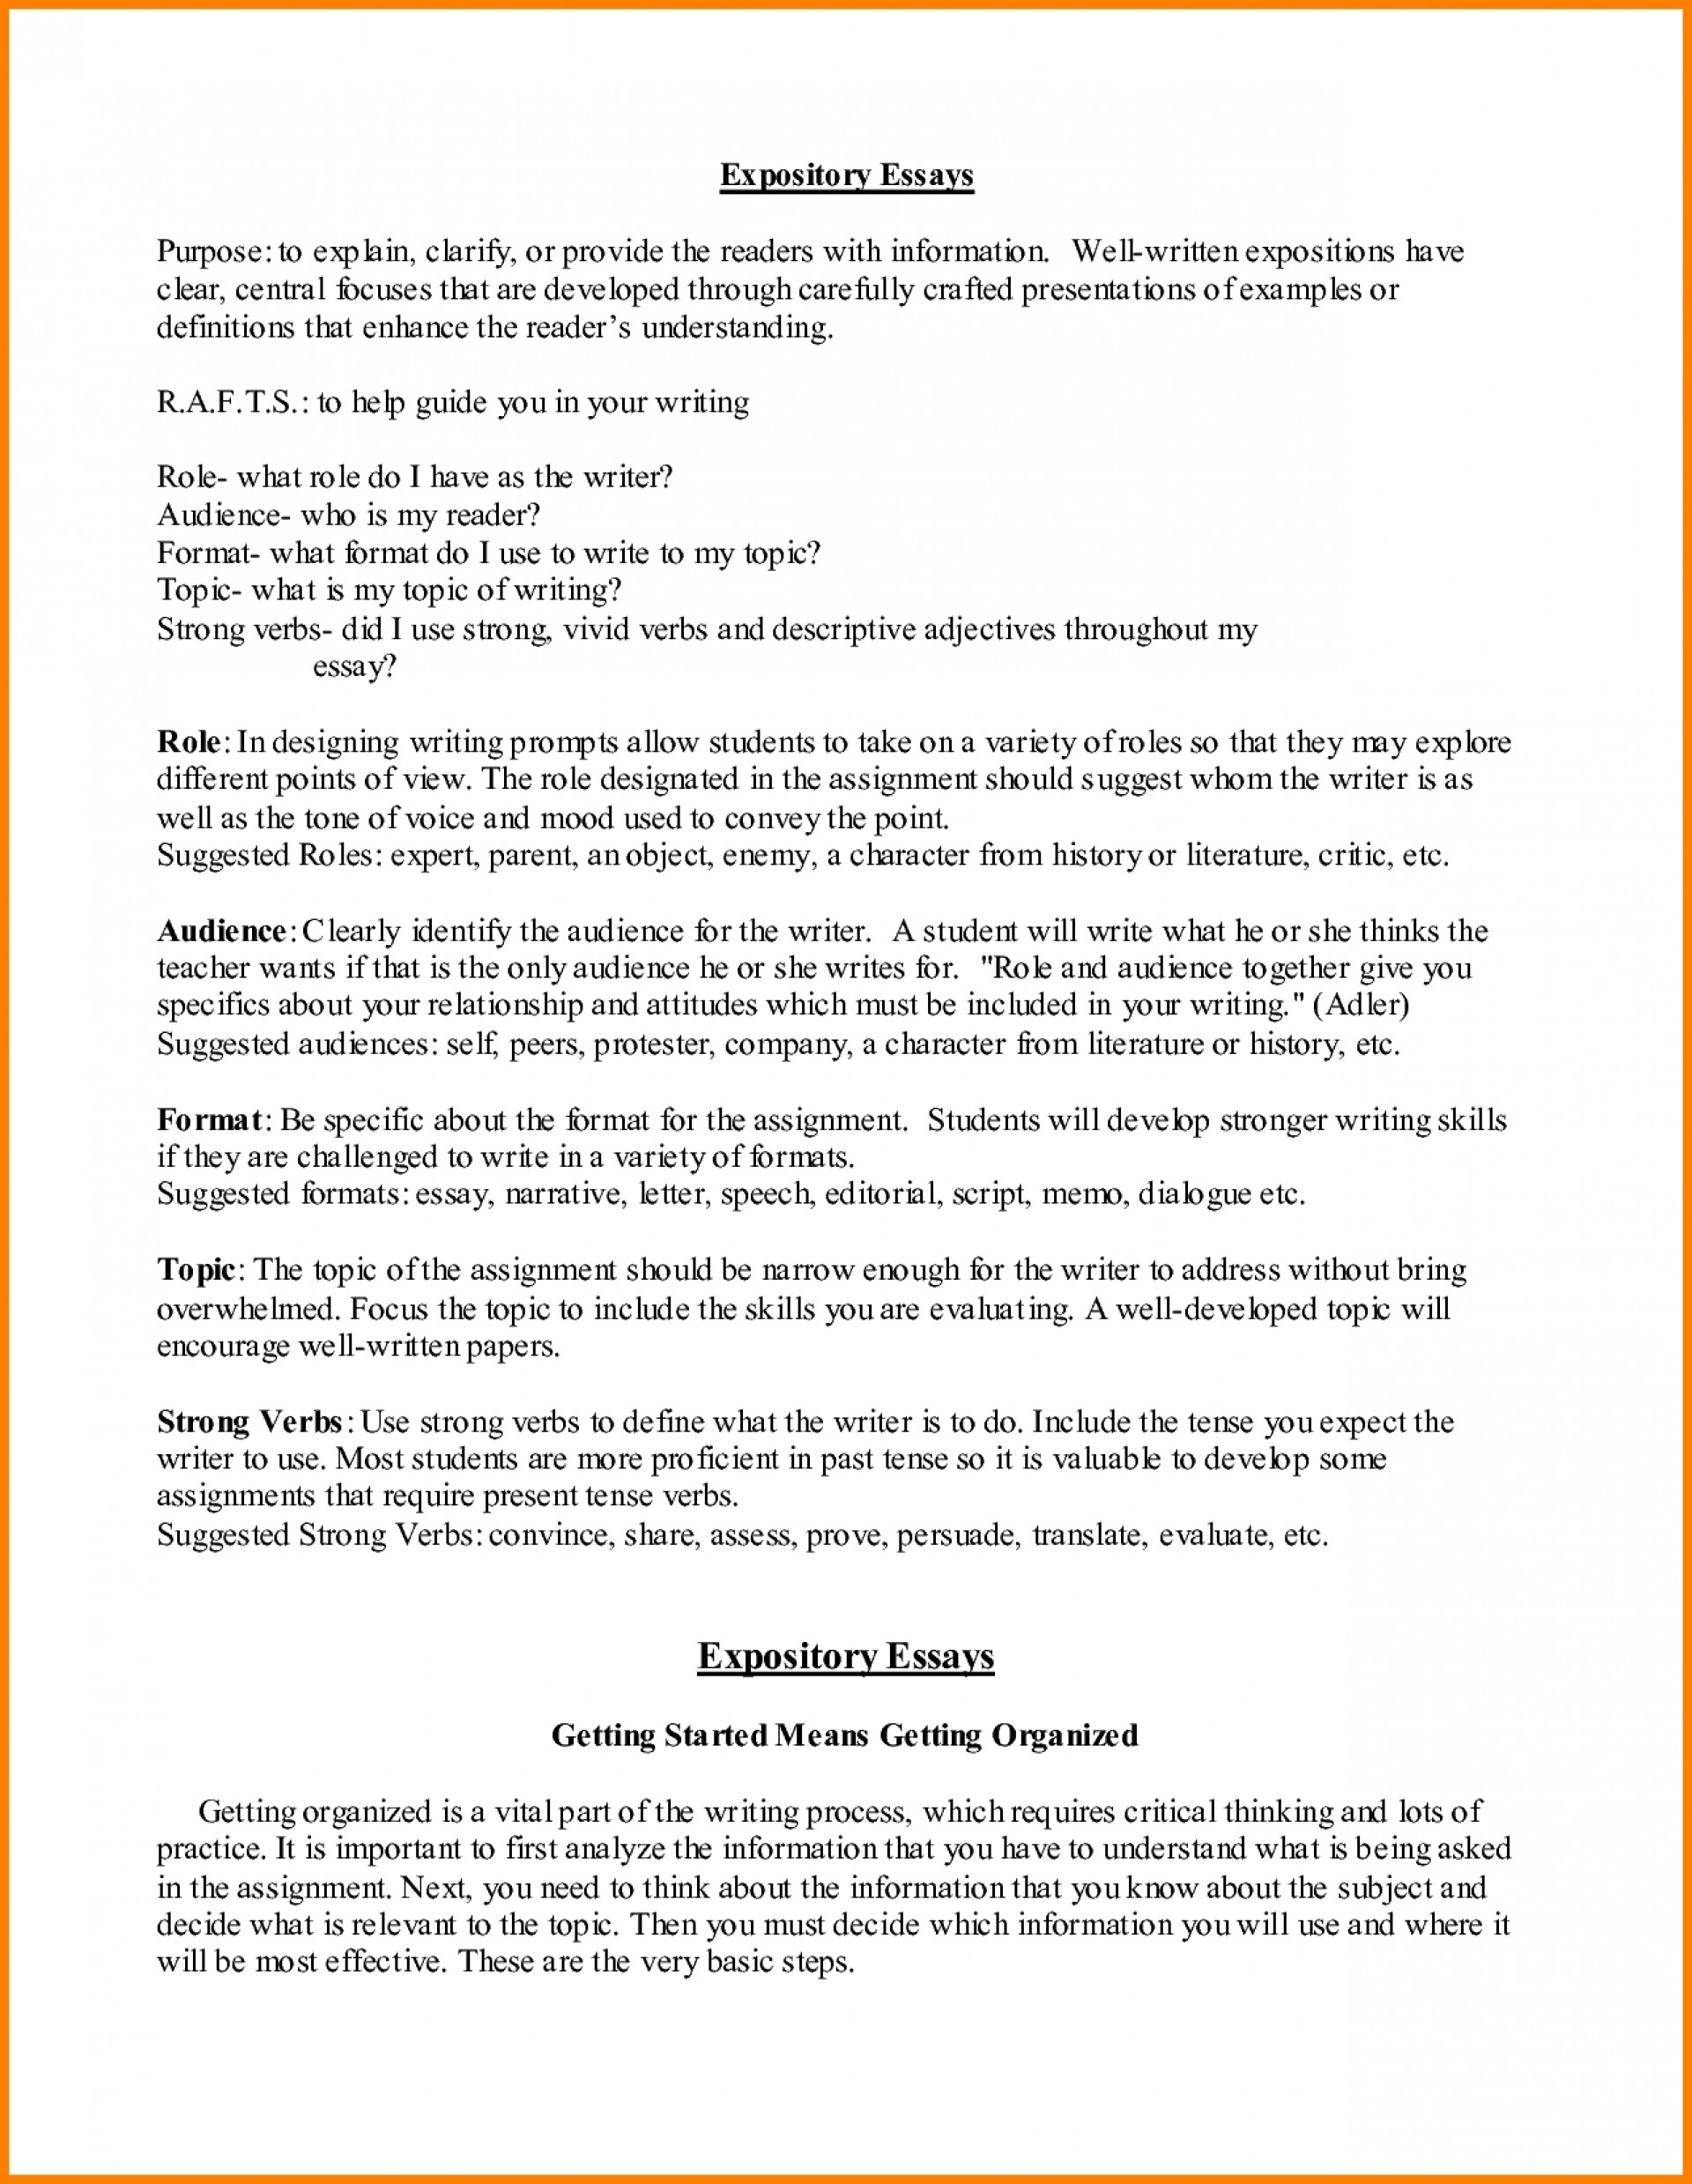 021 Describe Critical Thinking Theory Thesis For An Essay Should The Persuasive Brainly Good Fearsome With Business Letters Use Wr Companies That Write Papers Students Essays Is Type Unbelievable A Of 1920